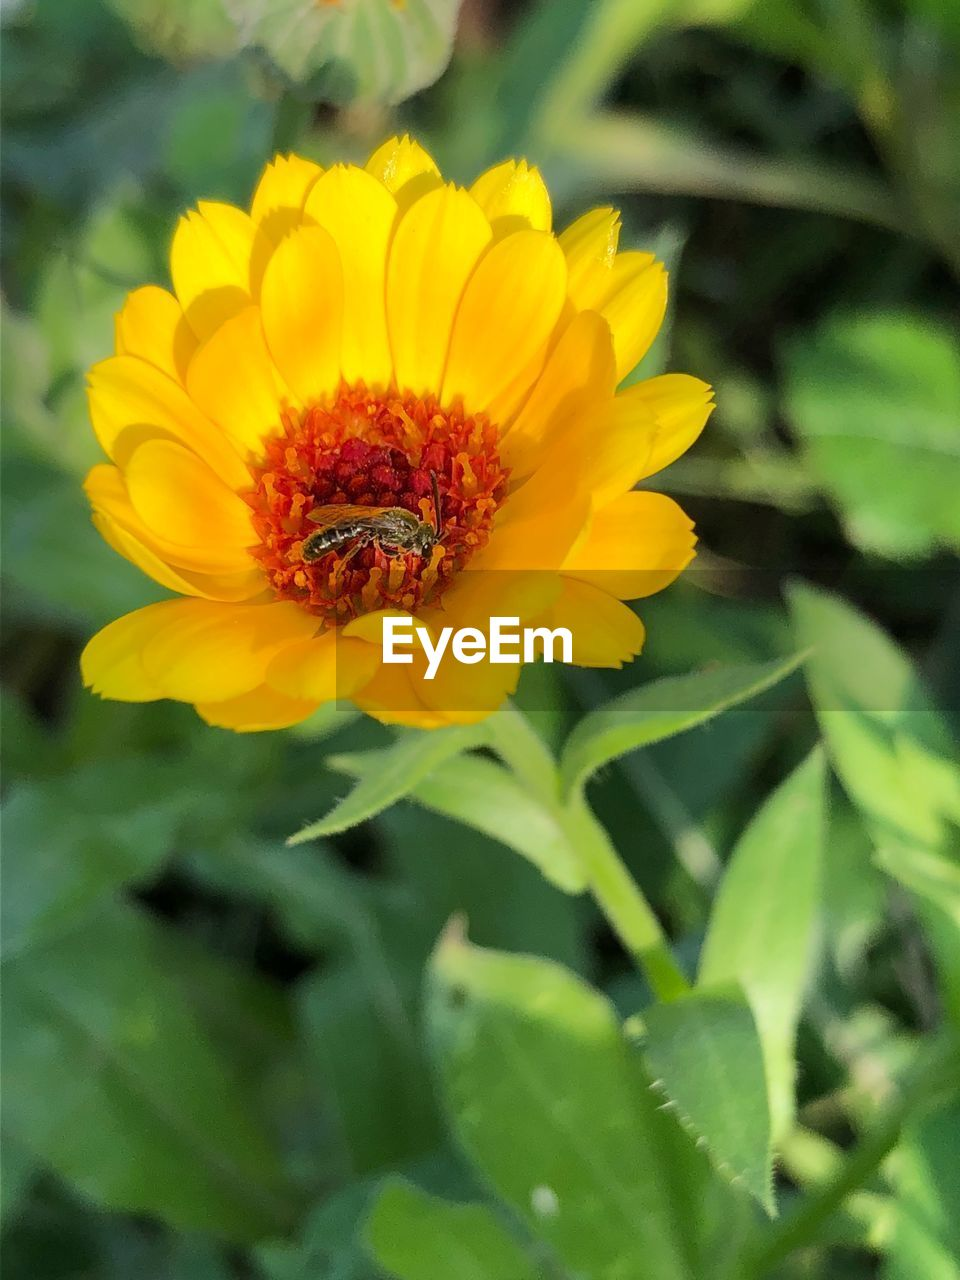 flowering plant, flower, beauty in nature, invertebrate, one animal, growth, animal, animals in the wild, animal themes, insect, plant, animal wildlife, freshness, fragility, bee, yellow, close-up, vulnerability, petal, flower head, no people, pollination, outdoors, pollen